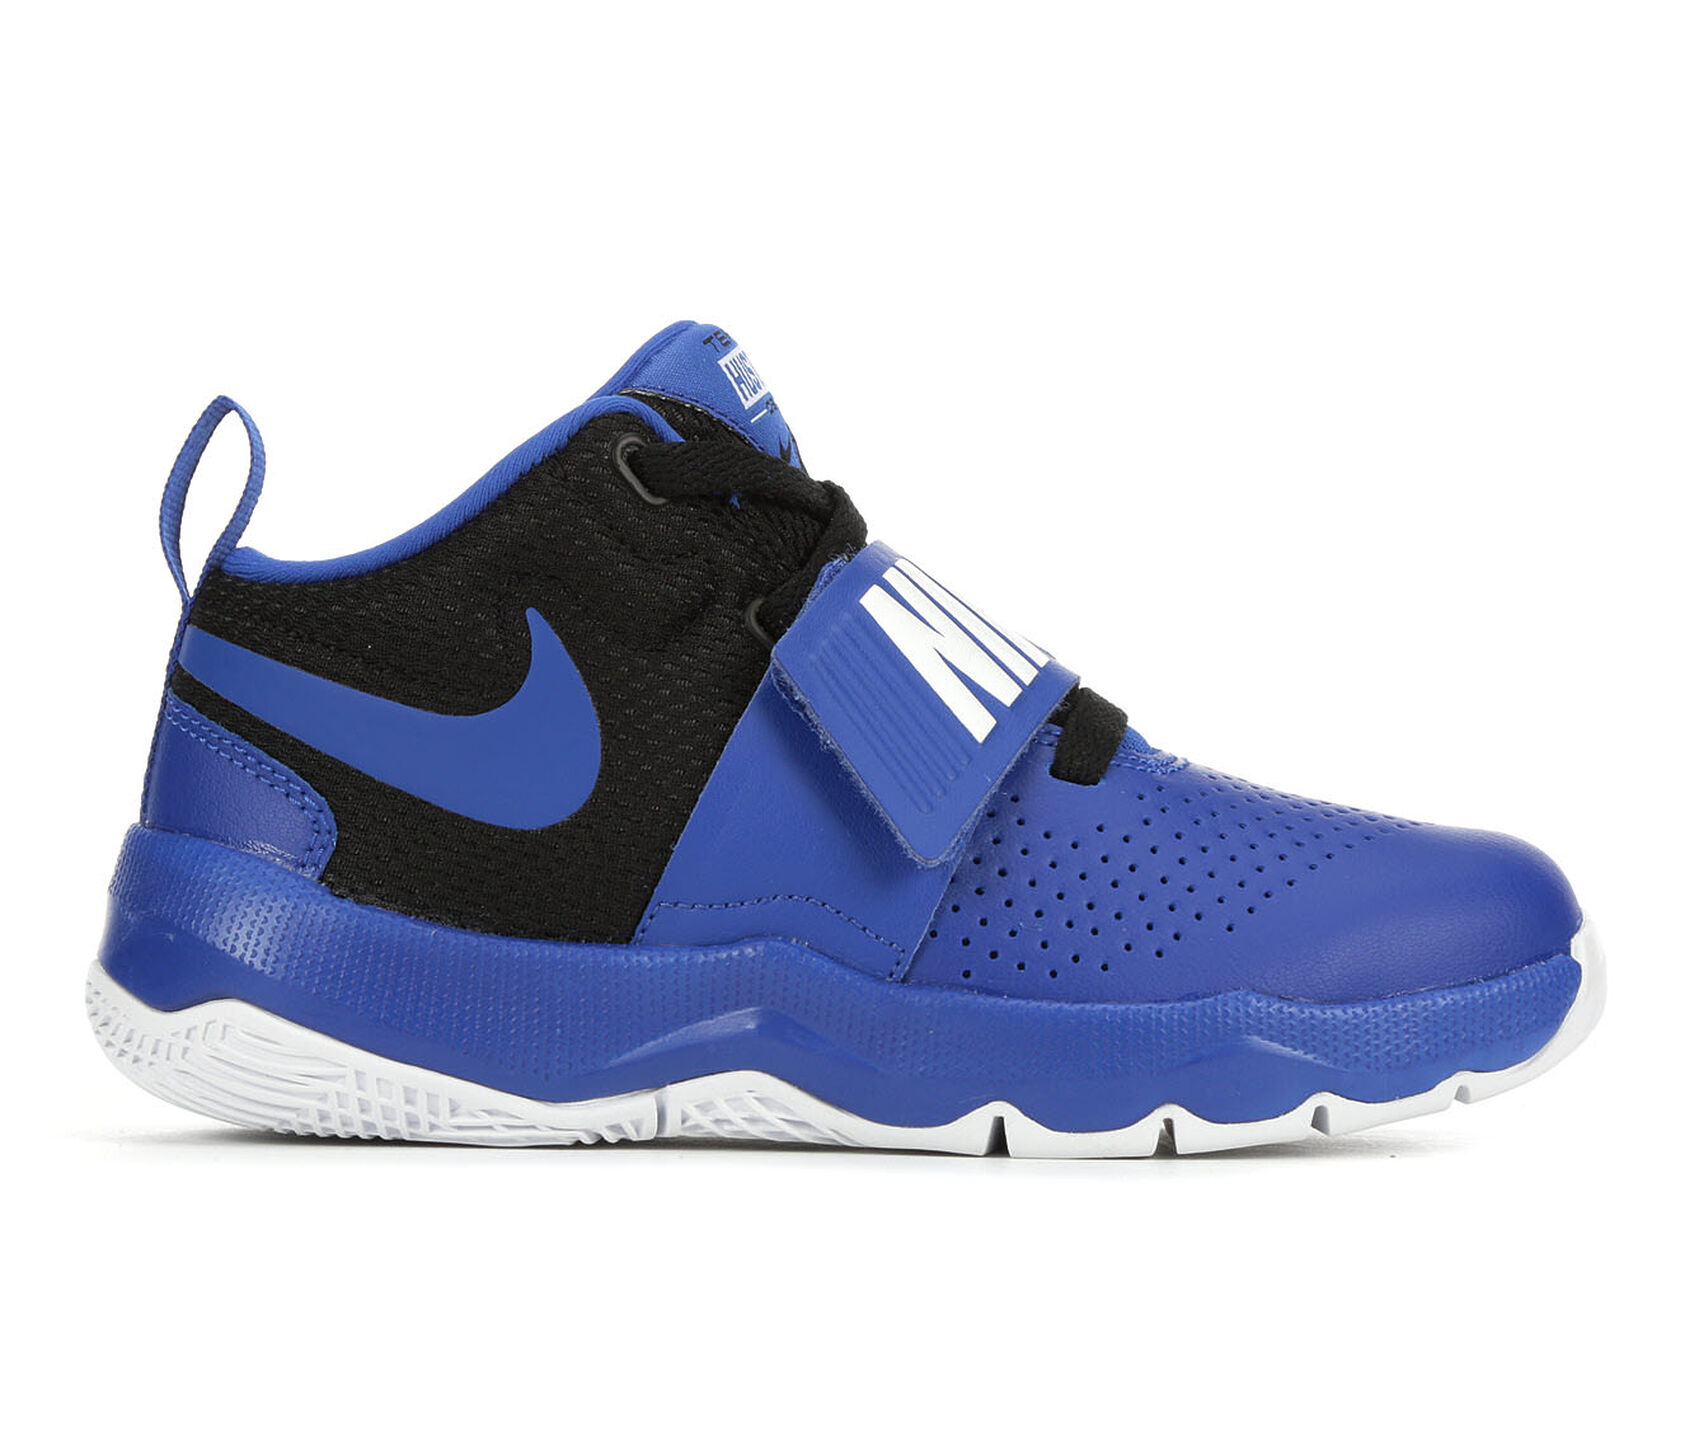 Boys' Nike Team Hustle D8 10.5-3 High Top Basketball Shoes ...